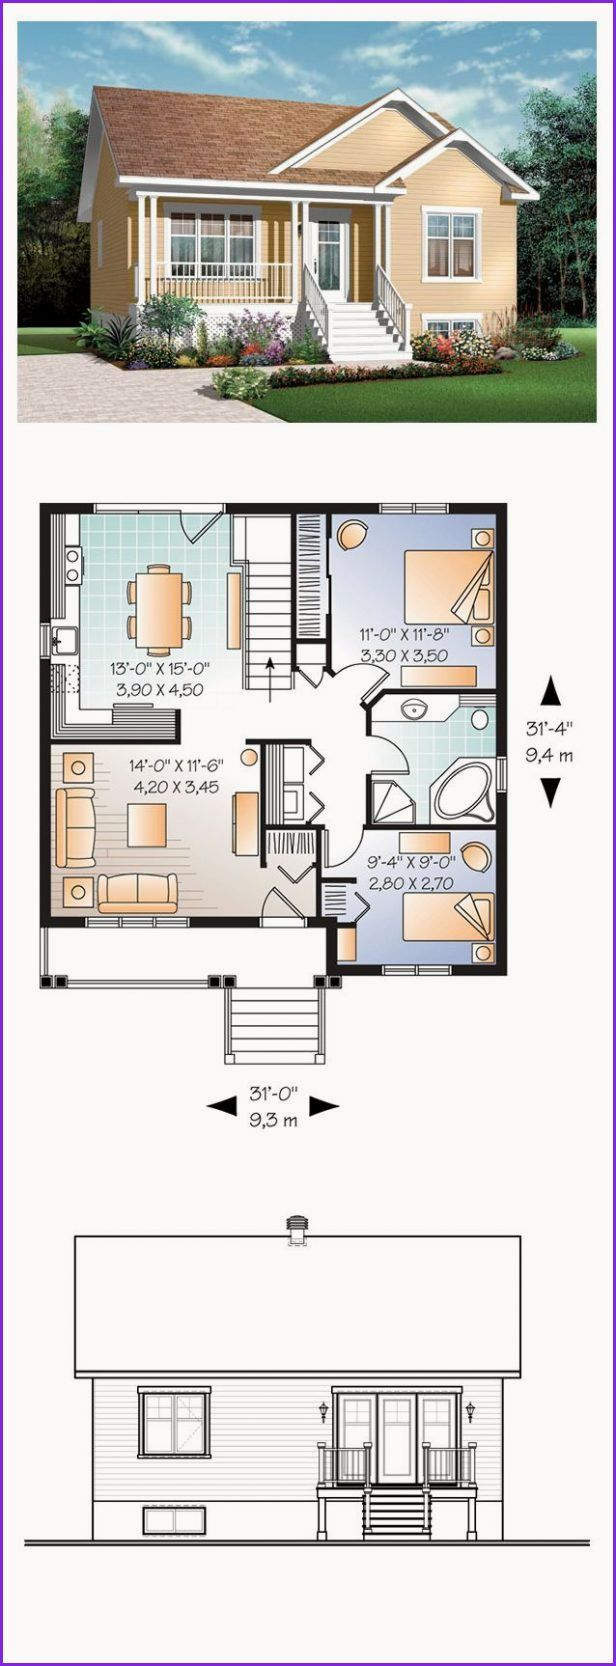 Awesome Small Farm House Plans Bungalow House Plans House Plans House Layouts